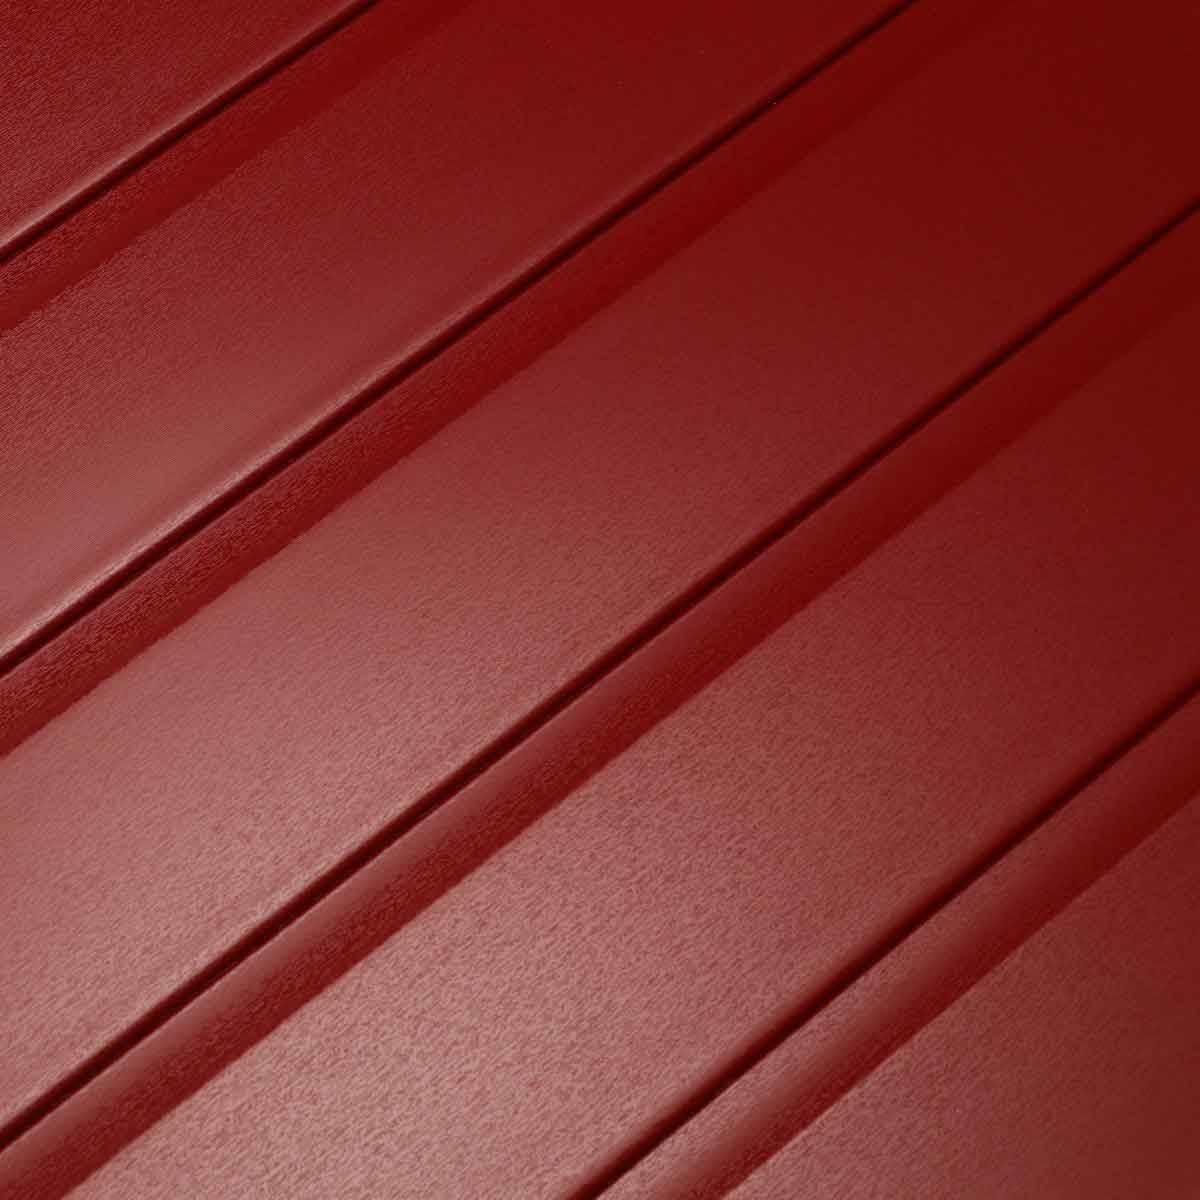 Red Cladding